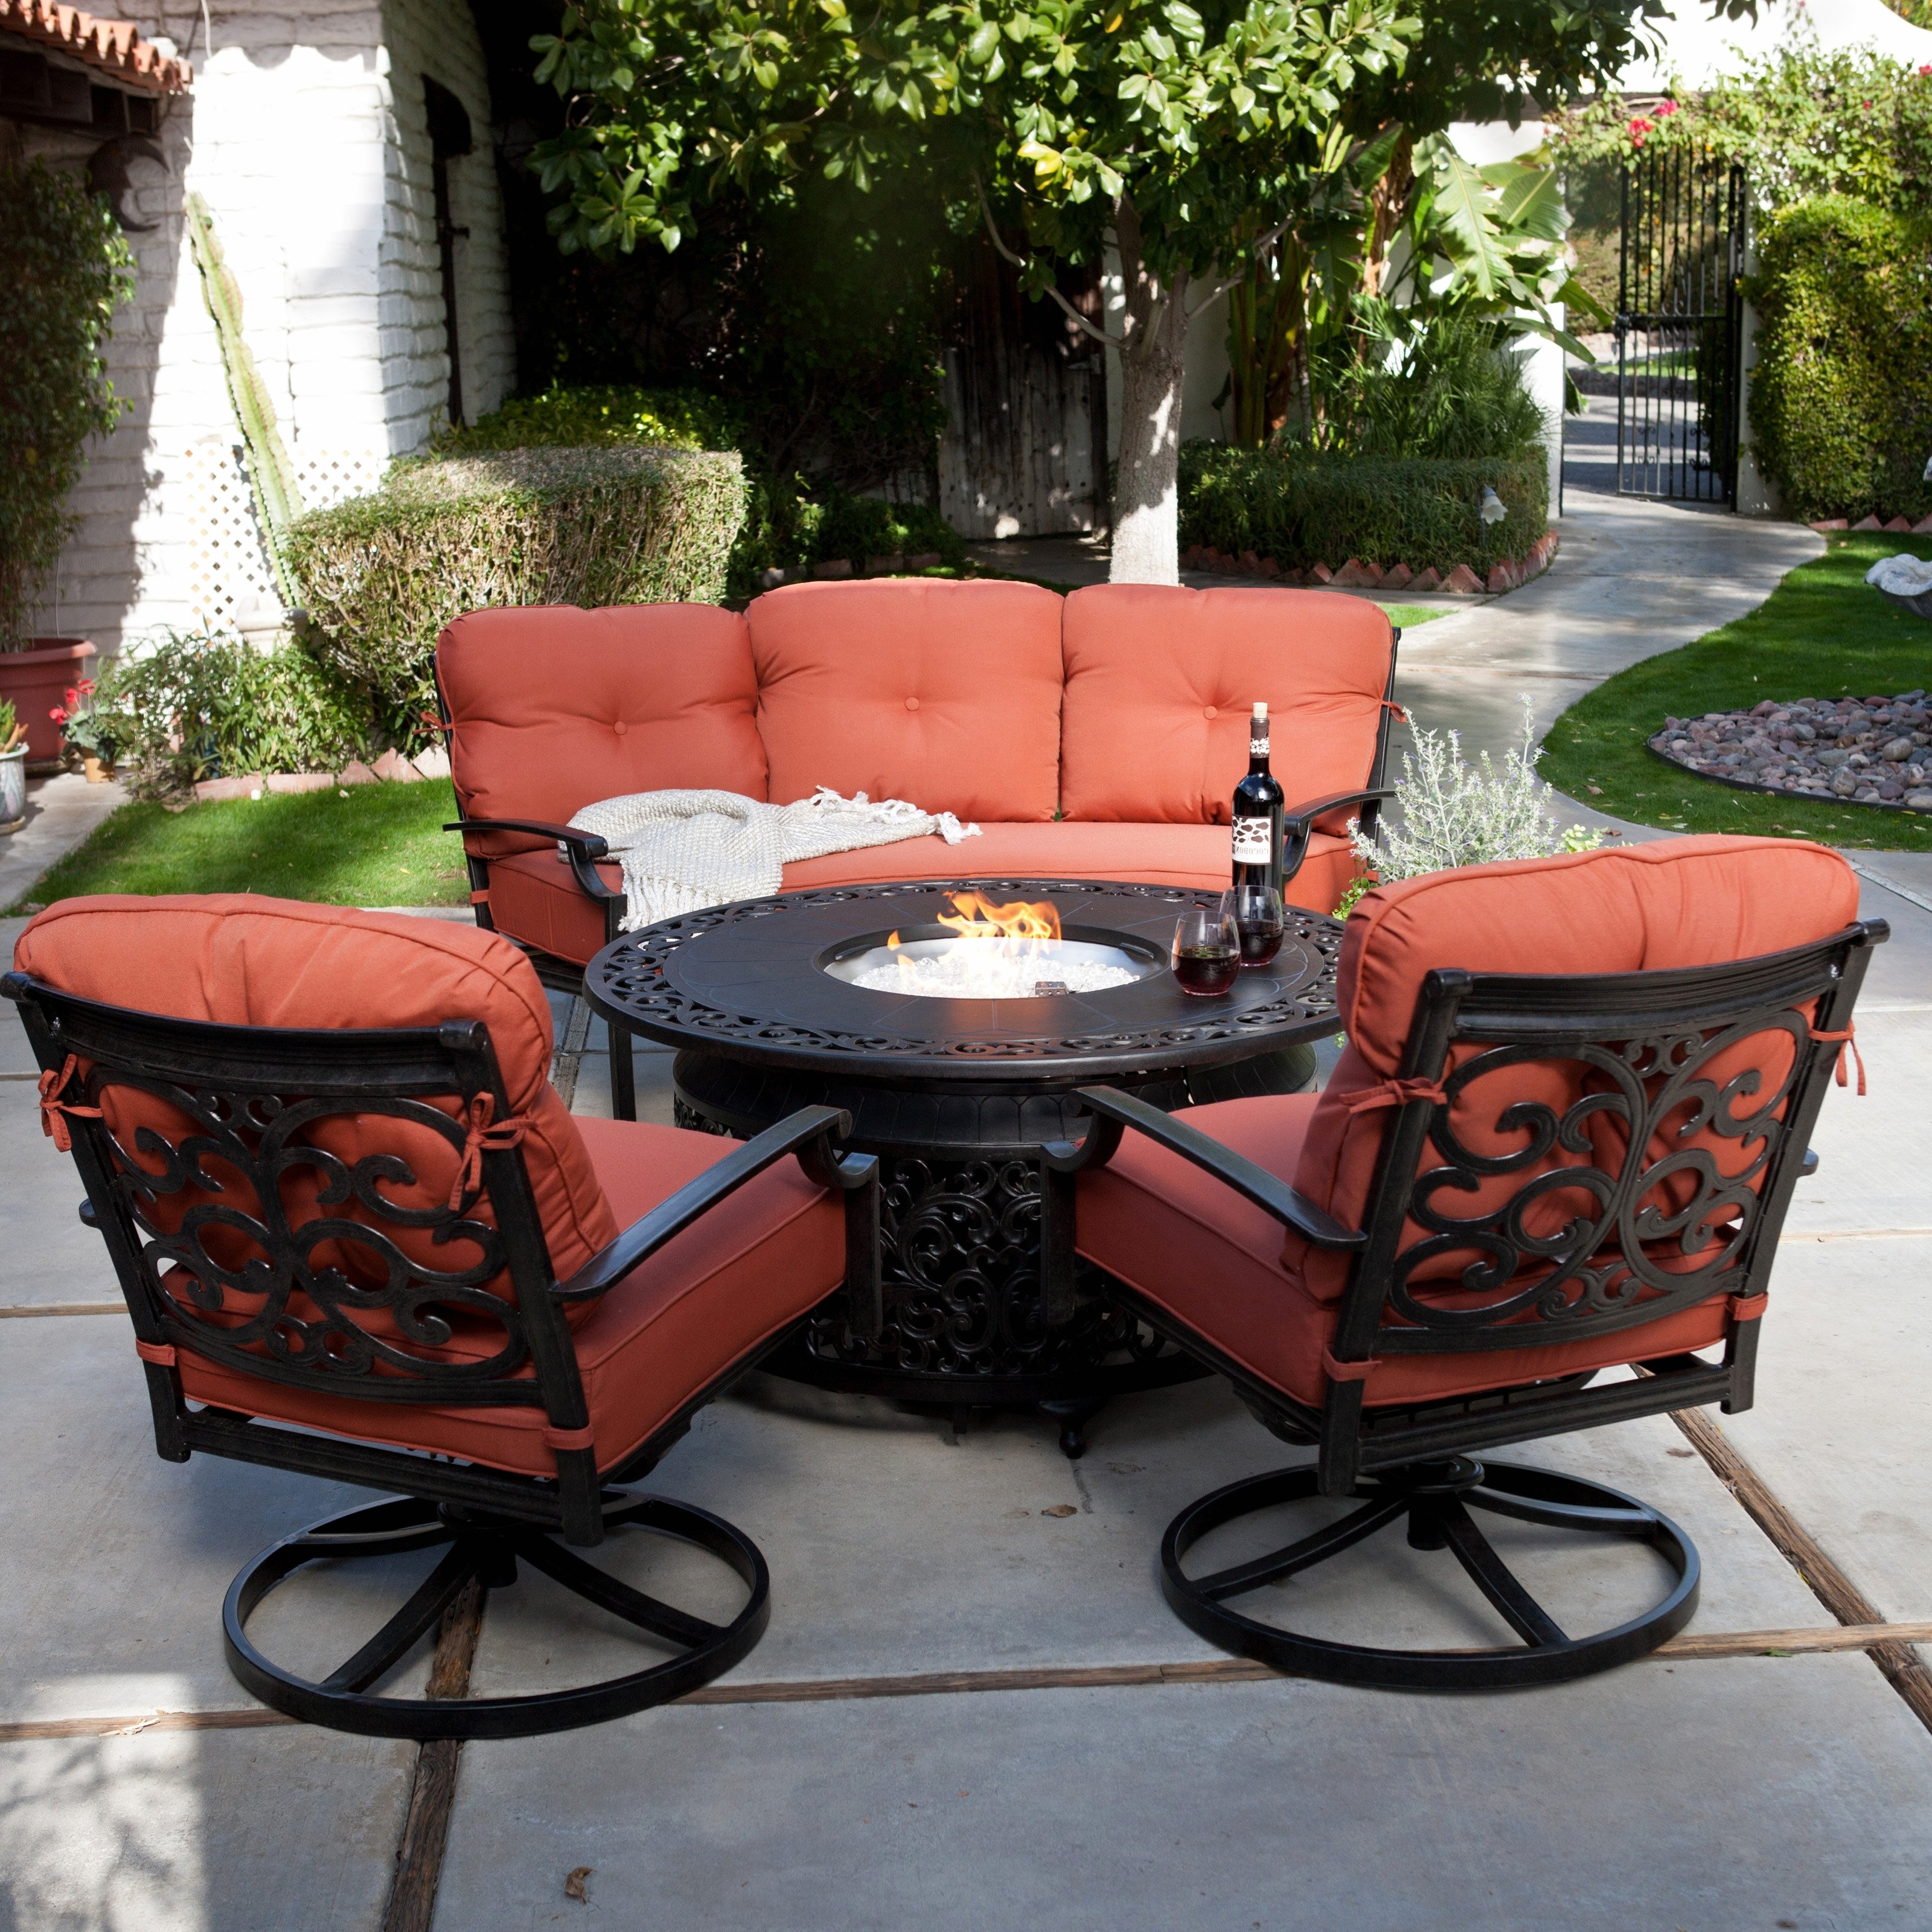 Current Patio Conversation Sets With Fire Pit Intended For 30 Amazing Propane Fire Pit Set Design (View 15 of 15)